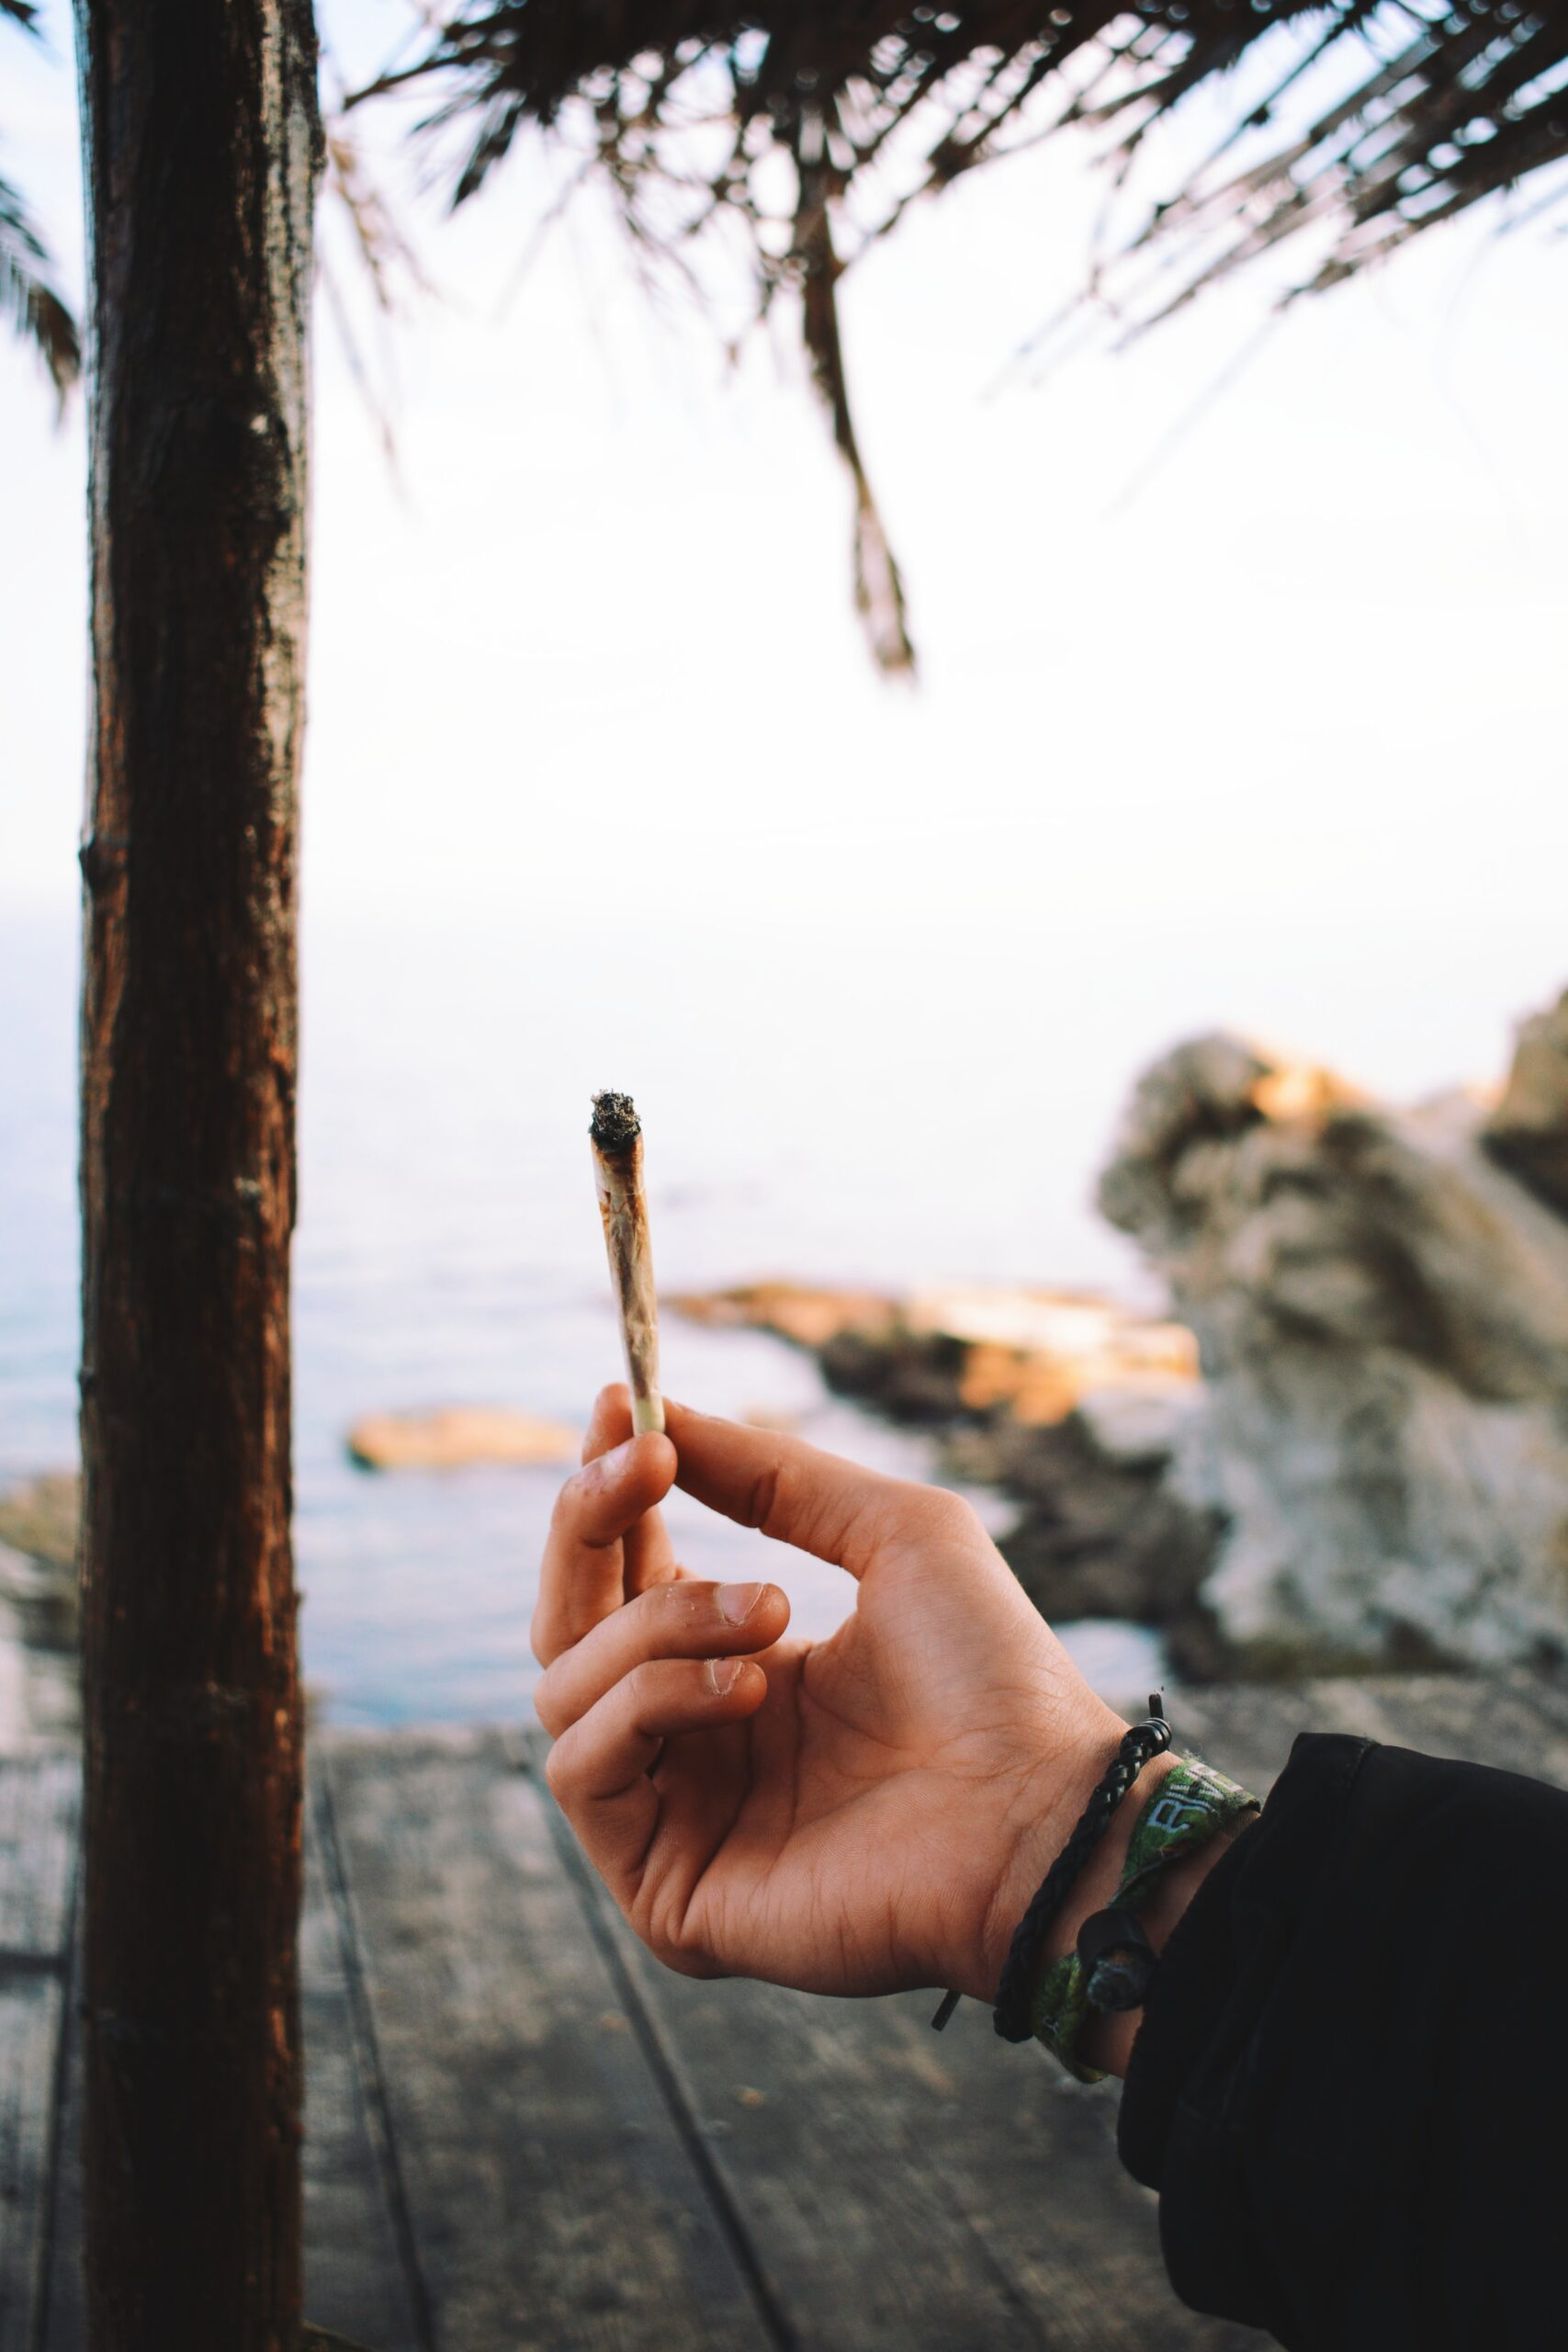 Pre-Roll With it!